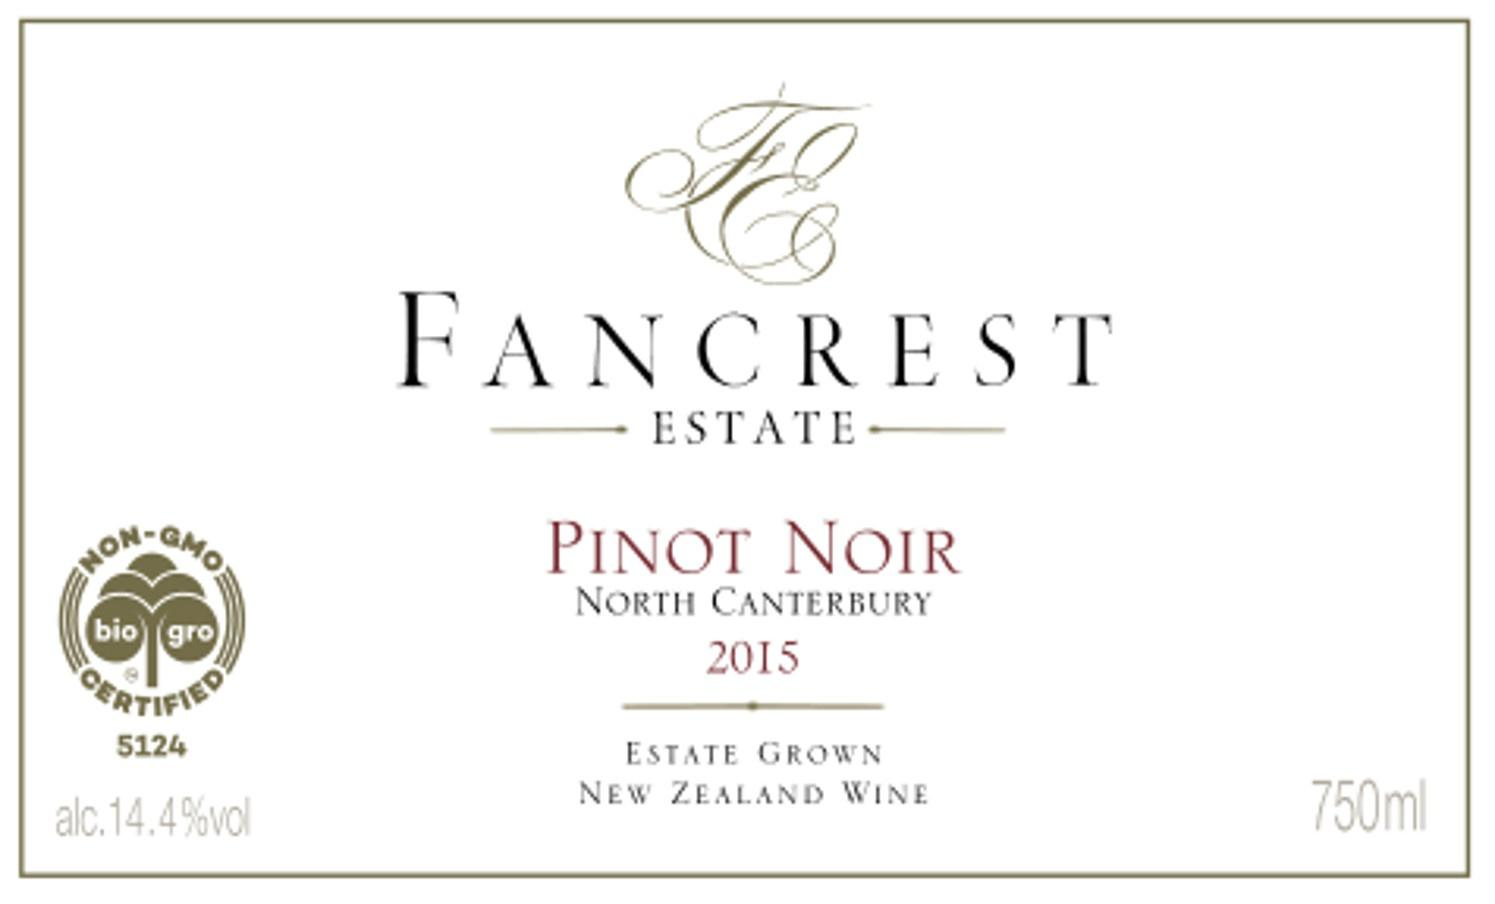 Fancrest Estate Pinot Noir 2015